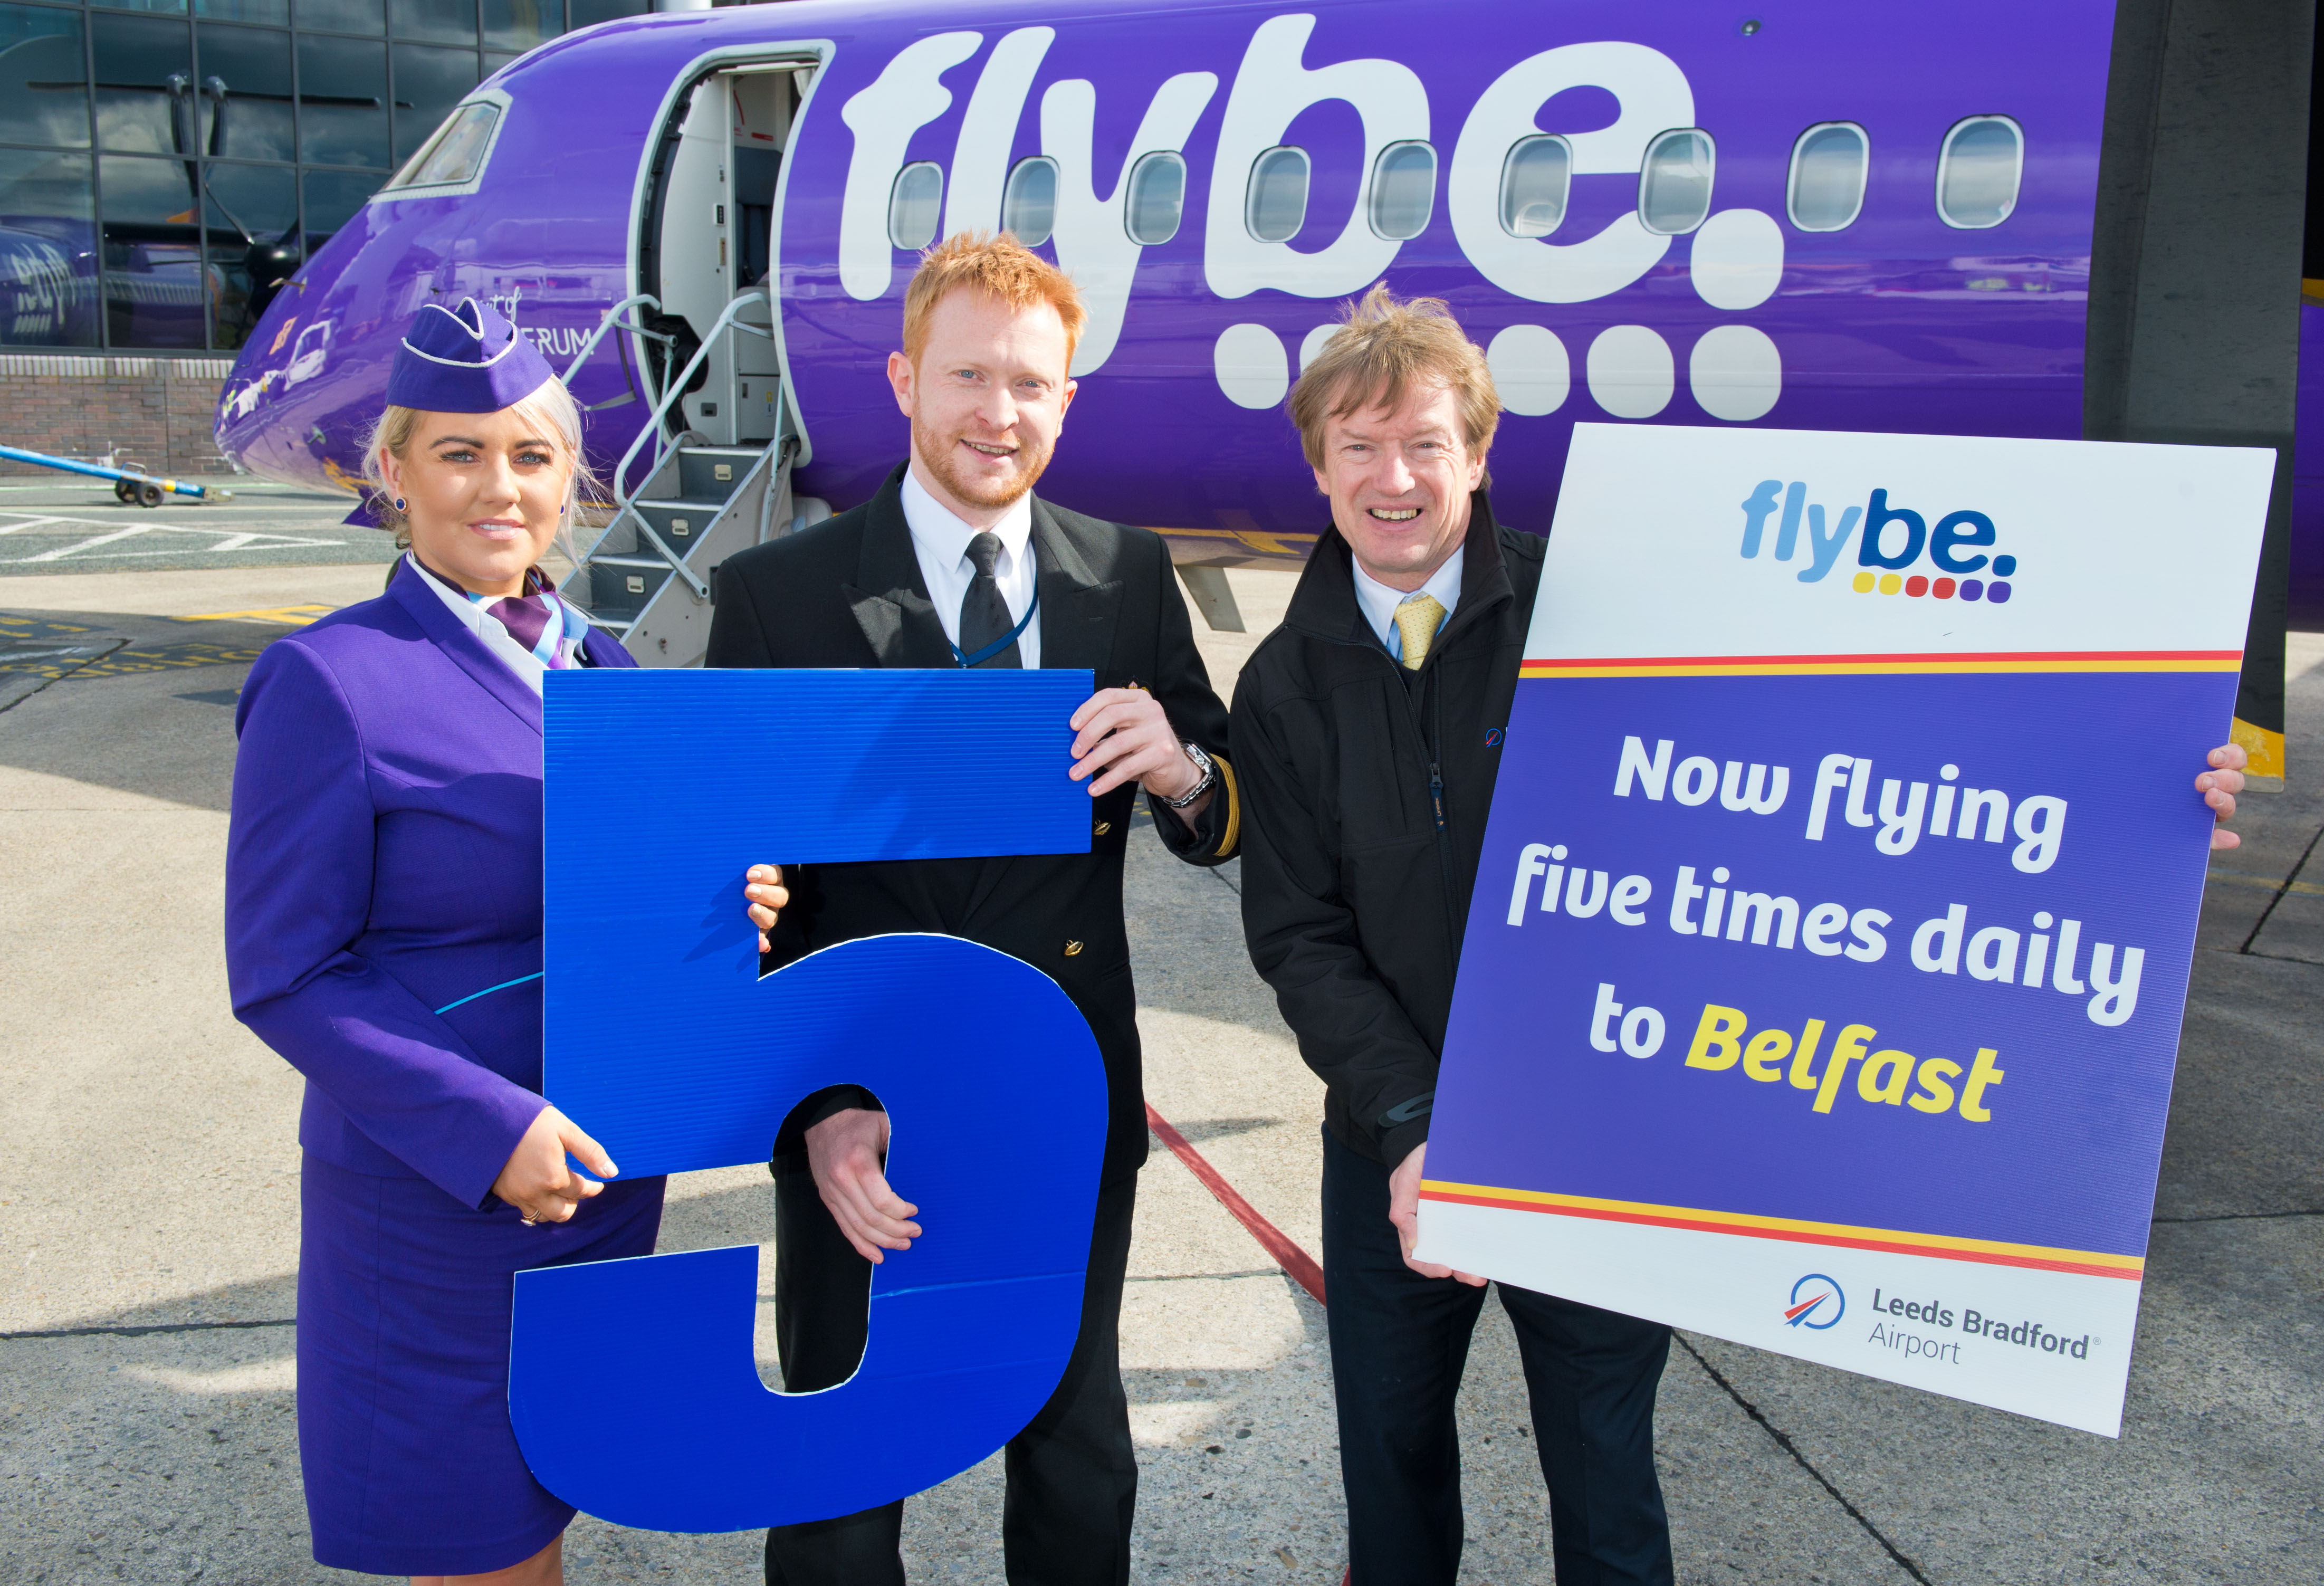 Image caption: Tony Hallwood, right, with Flybe's crew to celebrate the fifth rotation from Leeds Bradford Airport – which starts today. Photograph by Richard Walker/ www.imagenorth.net